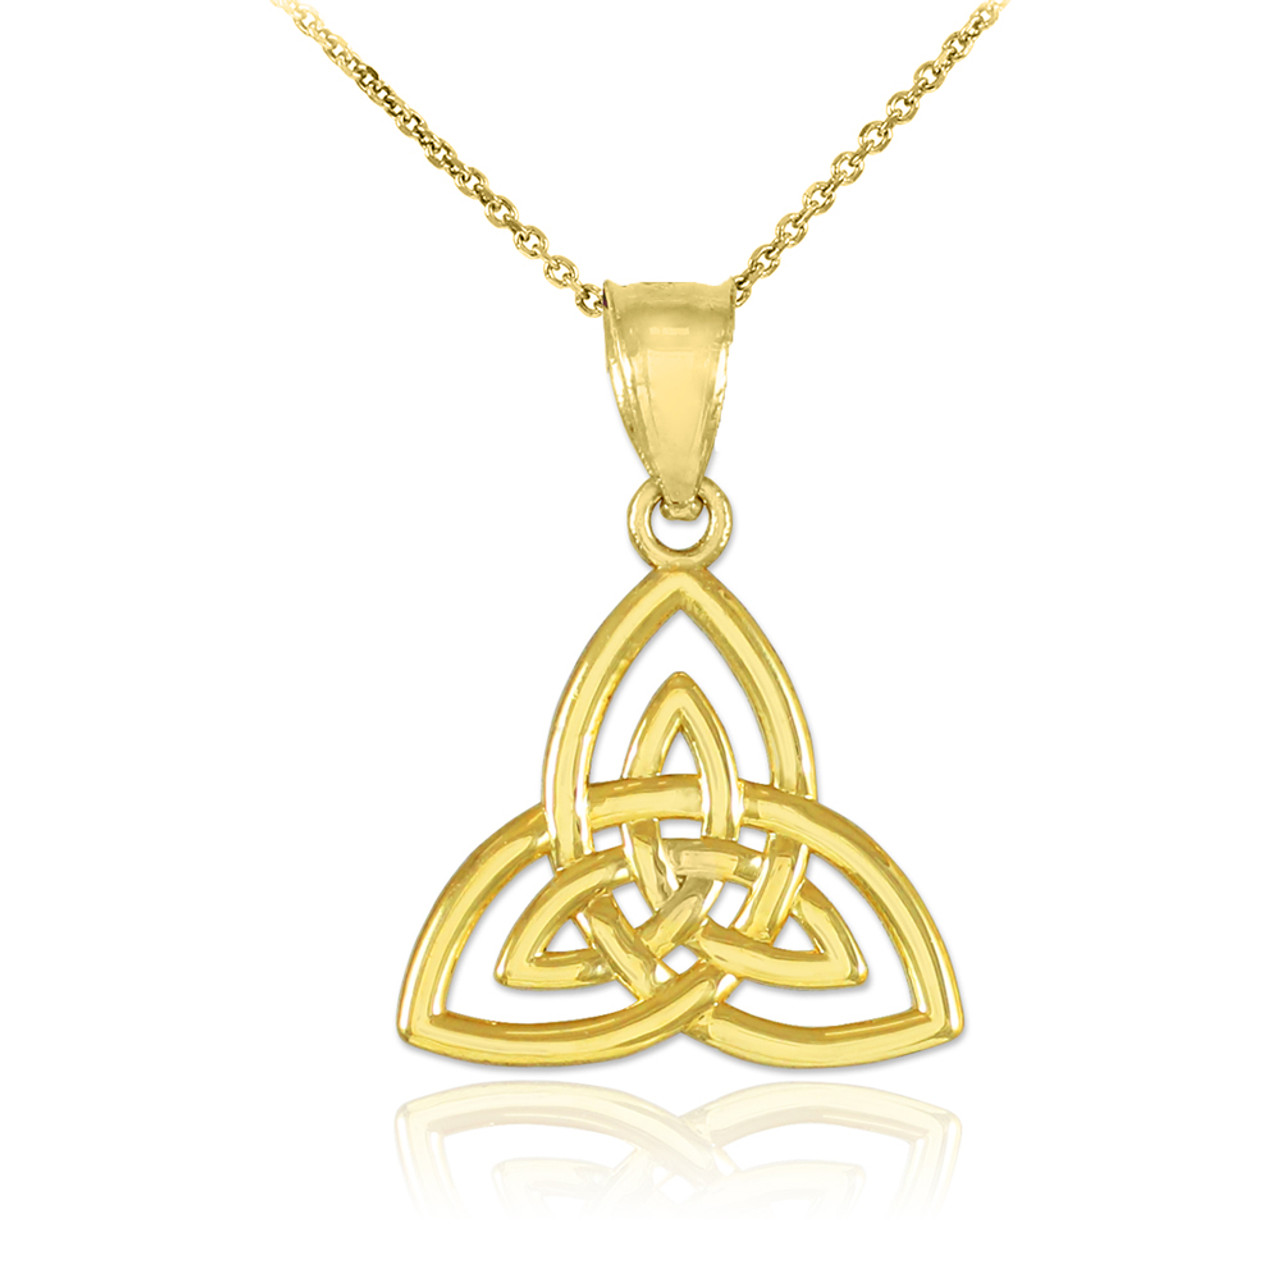 collection sterling chain pattern pendant initial collections c initials celtic silver necklace in knot